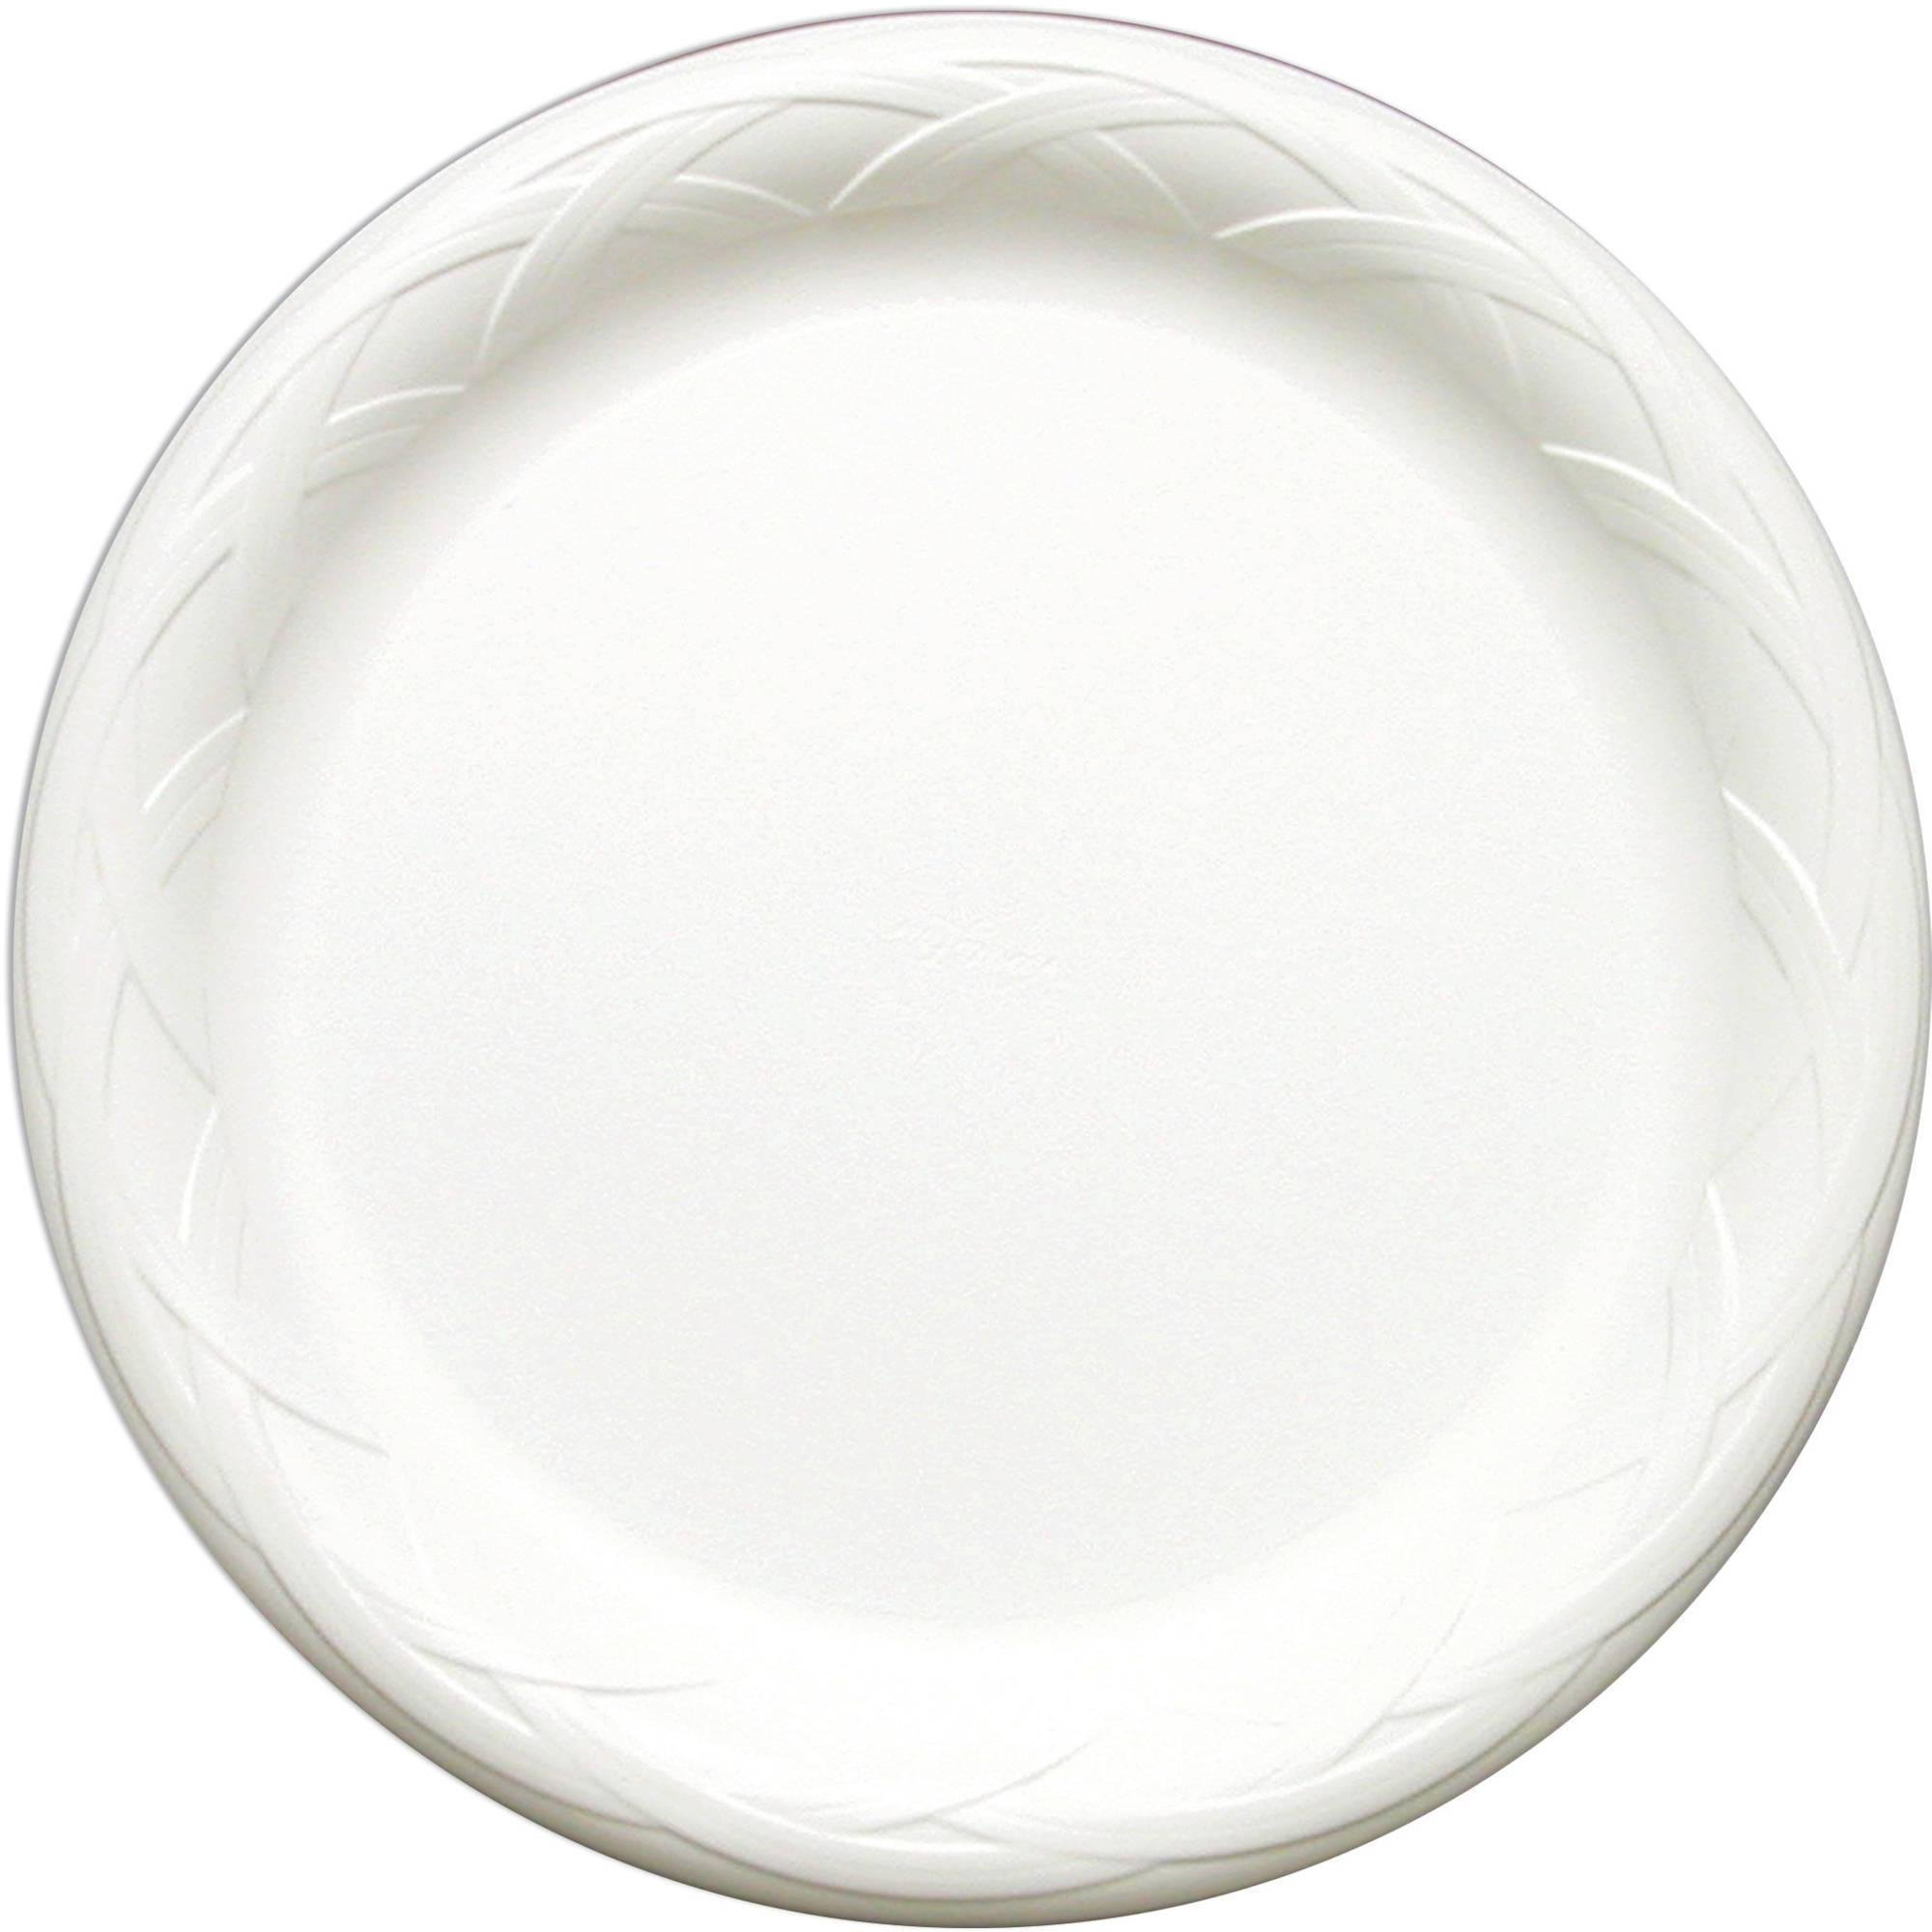 Because unlike paper plates that simply can\u0027t stand up to heavier foods Vanity Fair disposable plates are specifically designed to handle all types of ...  sc 1 st  Amazon.com & Amazon.com: Vanity Fair Impressions Disposable Dessert Plates Paper ...